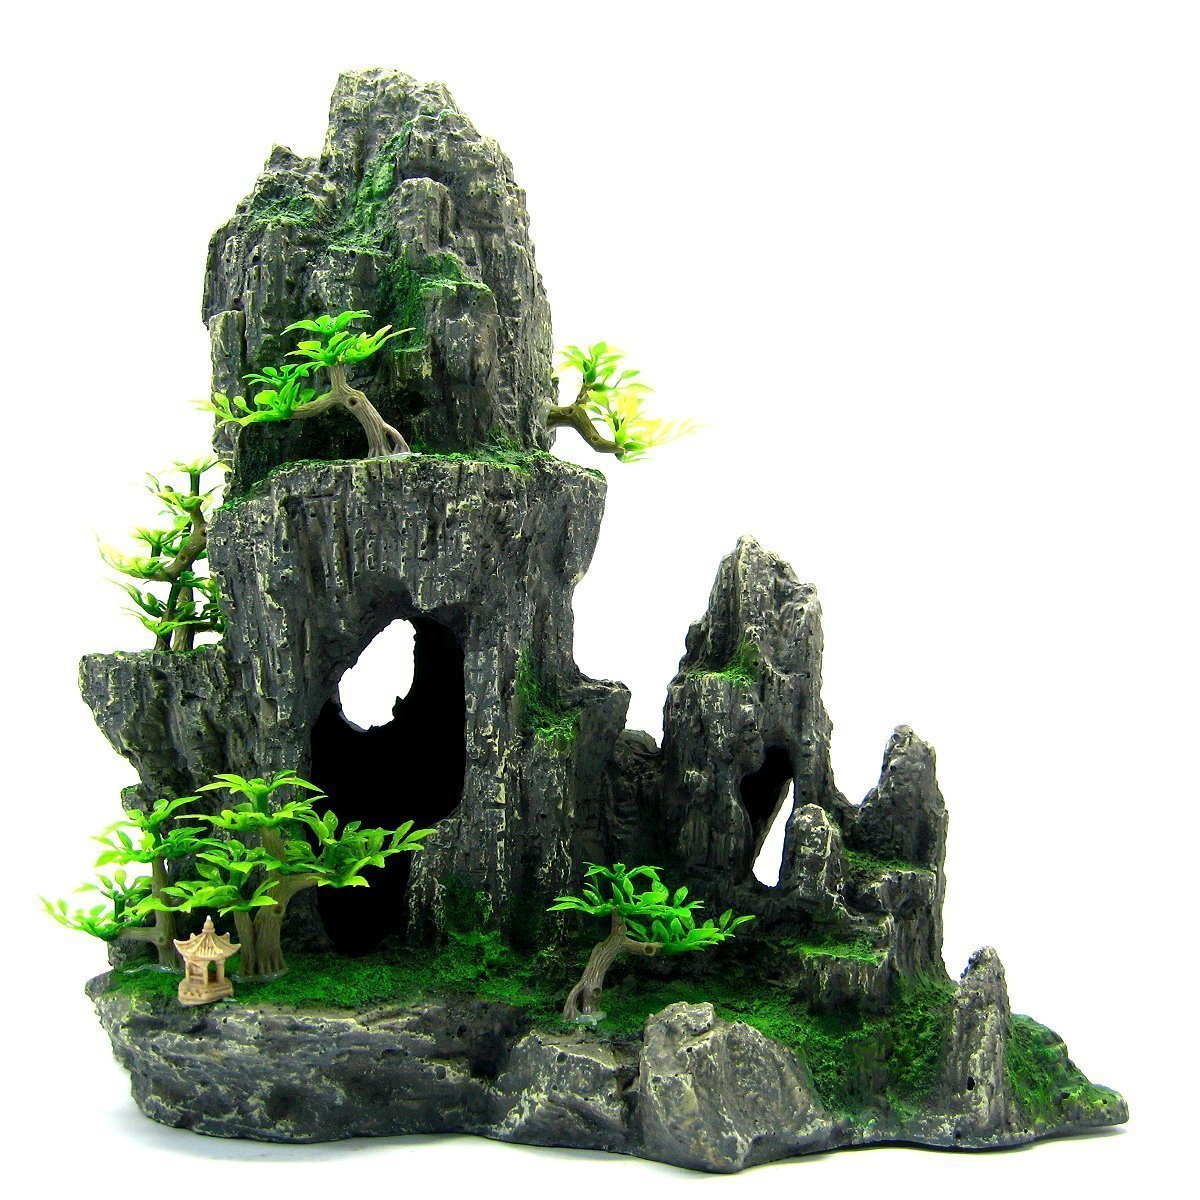 Mountain View Aquarium Ornament tree 29x15x28.5cm - Rock Cave house decoration by Aquarium Equip by Aquarium Equip